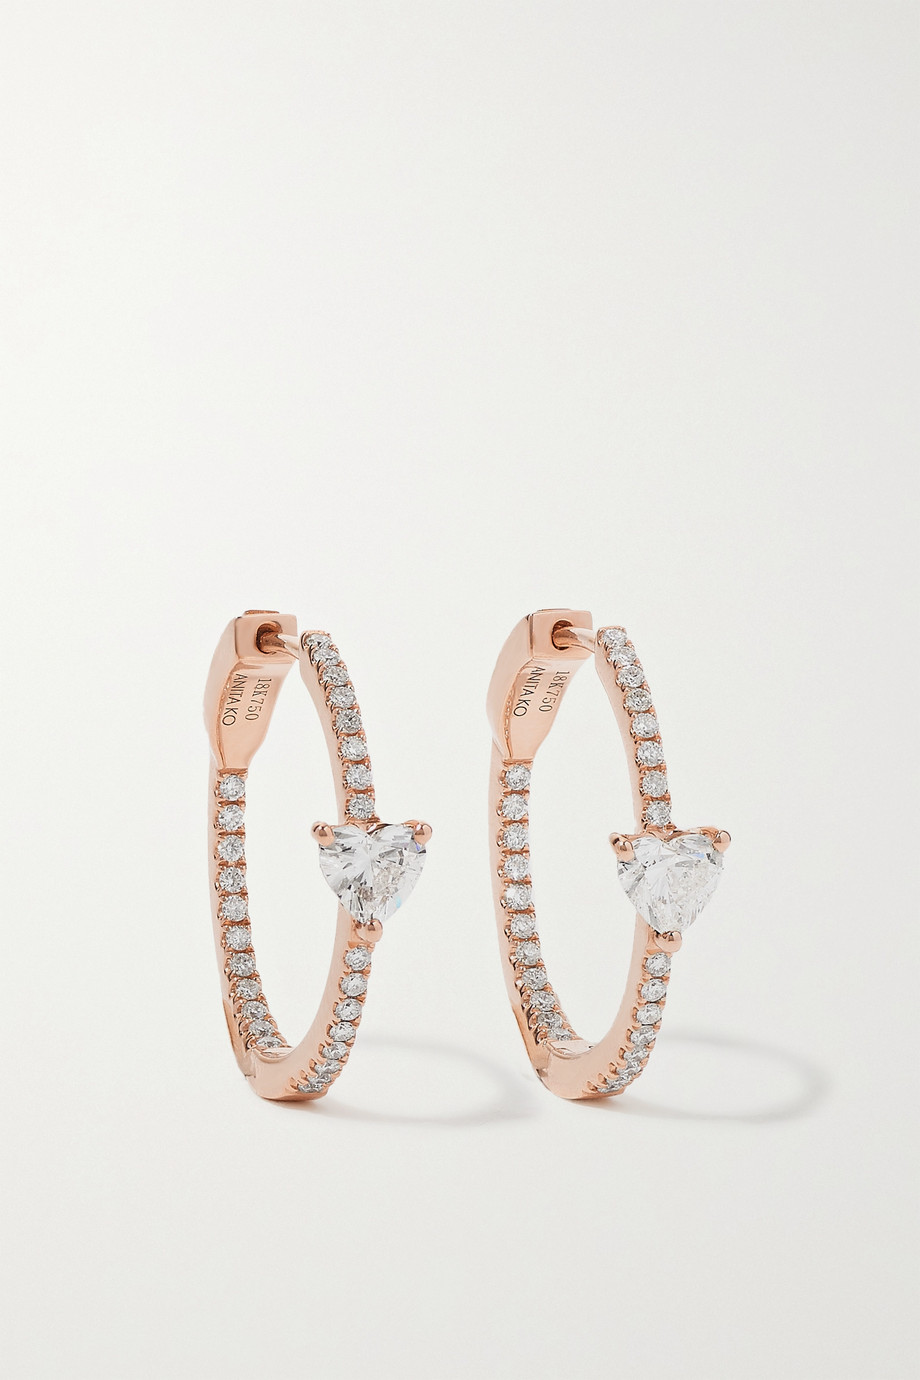 Anita Ko Boucles d'oreilles en or rose 18 carats et diamants